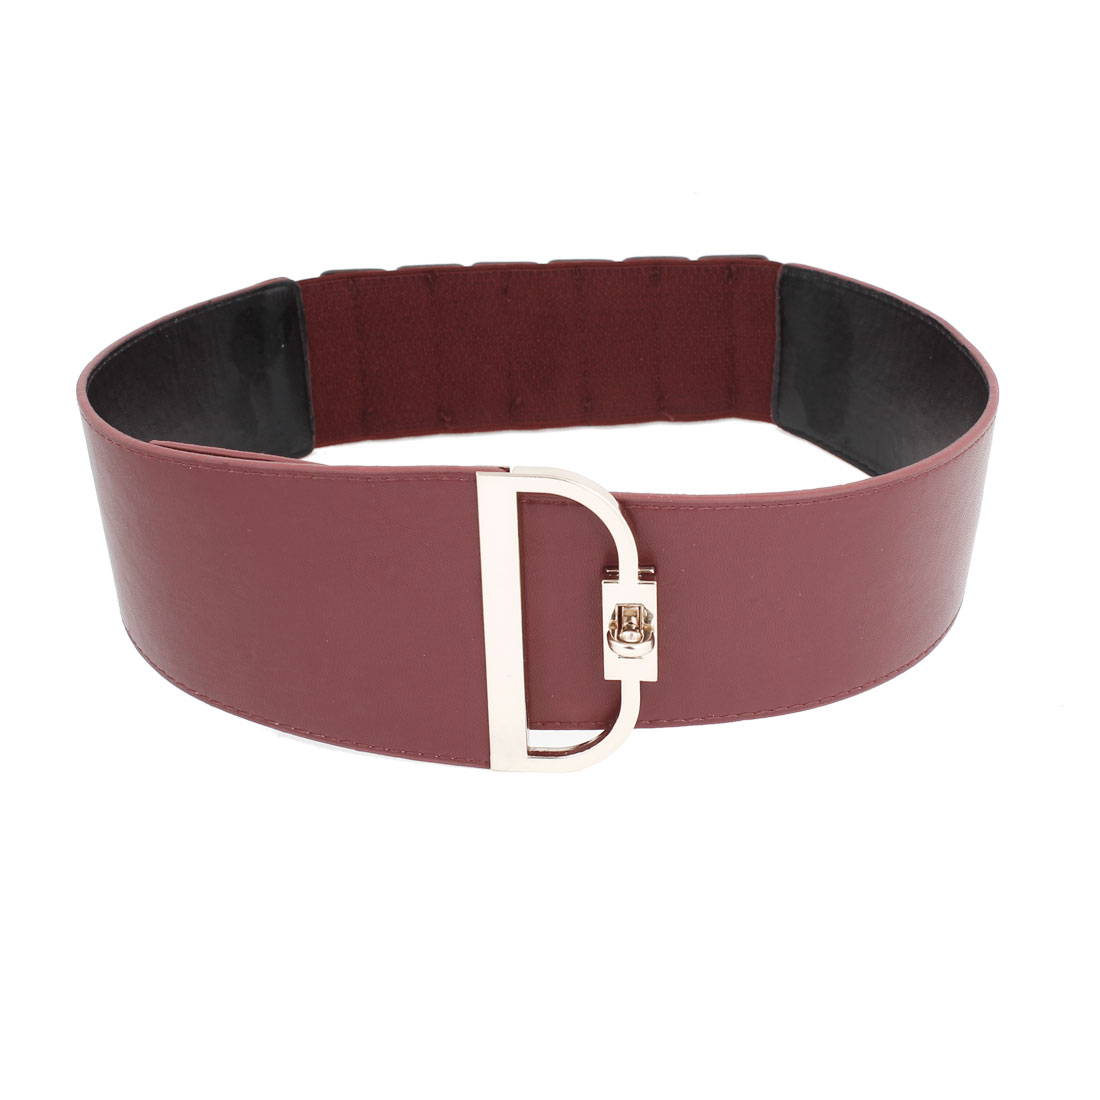 Metal Turn Lock Buckle Burgundy Faux Leather Coated Cinch Belt for Women